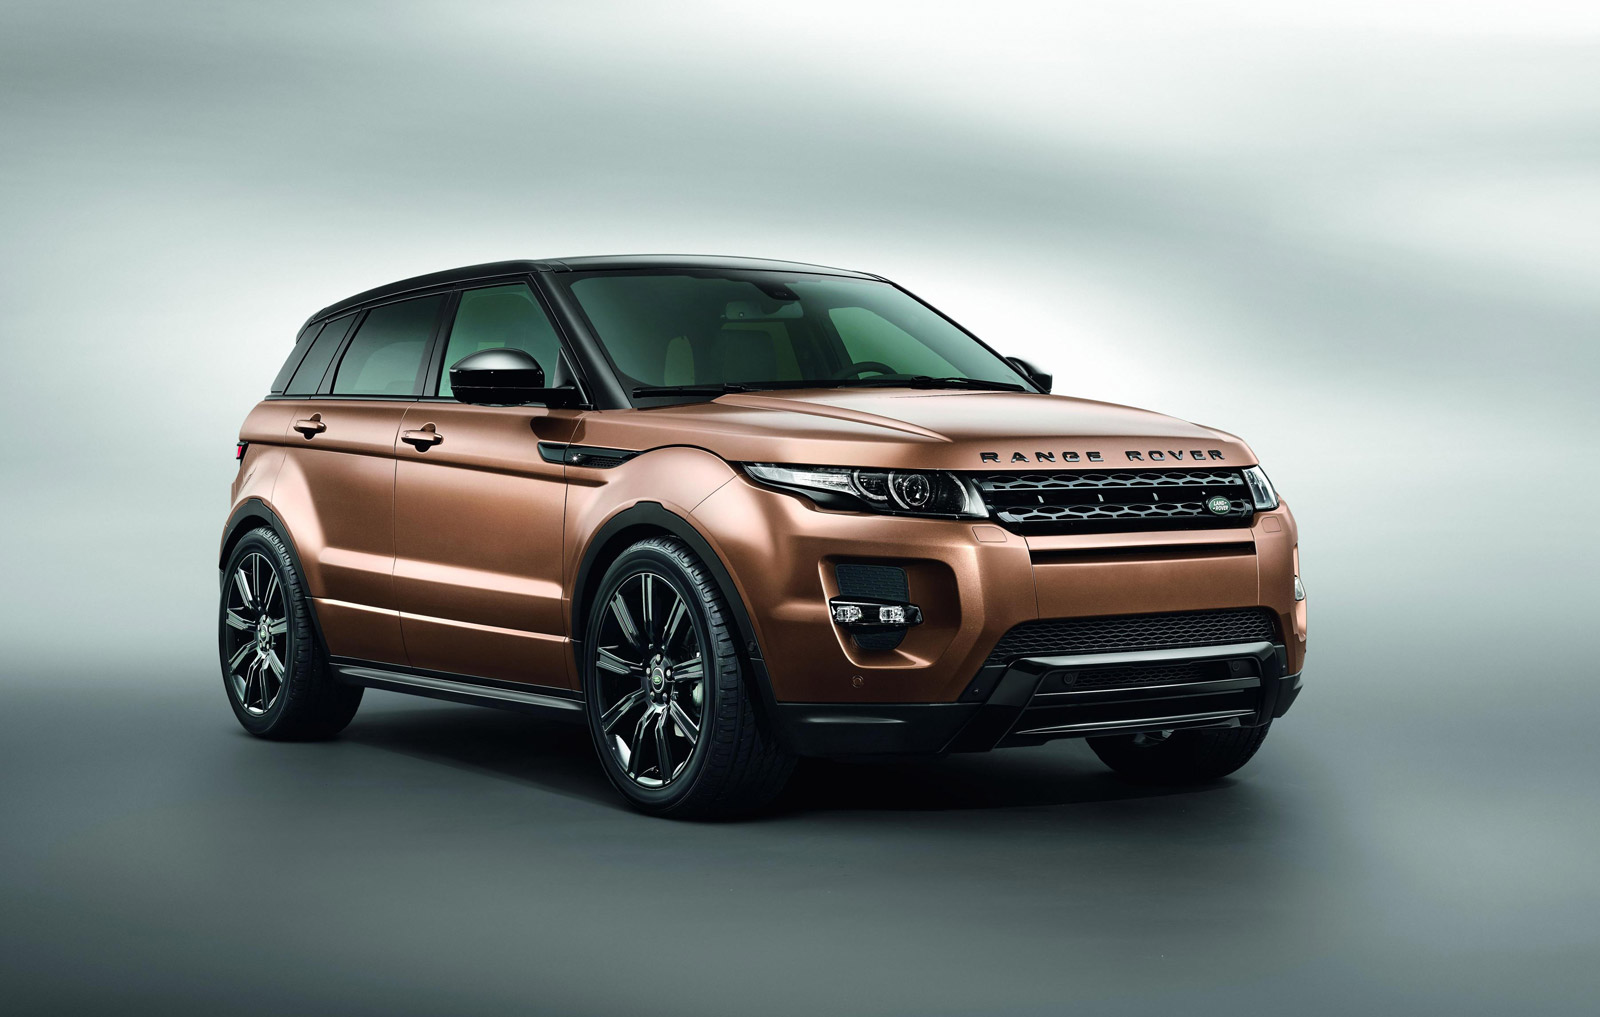 2014 Land Rover Range Rover Evoque Preview